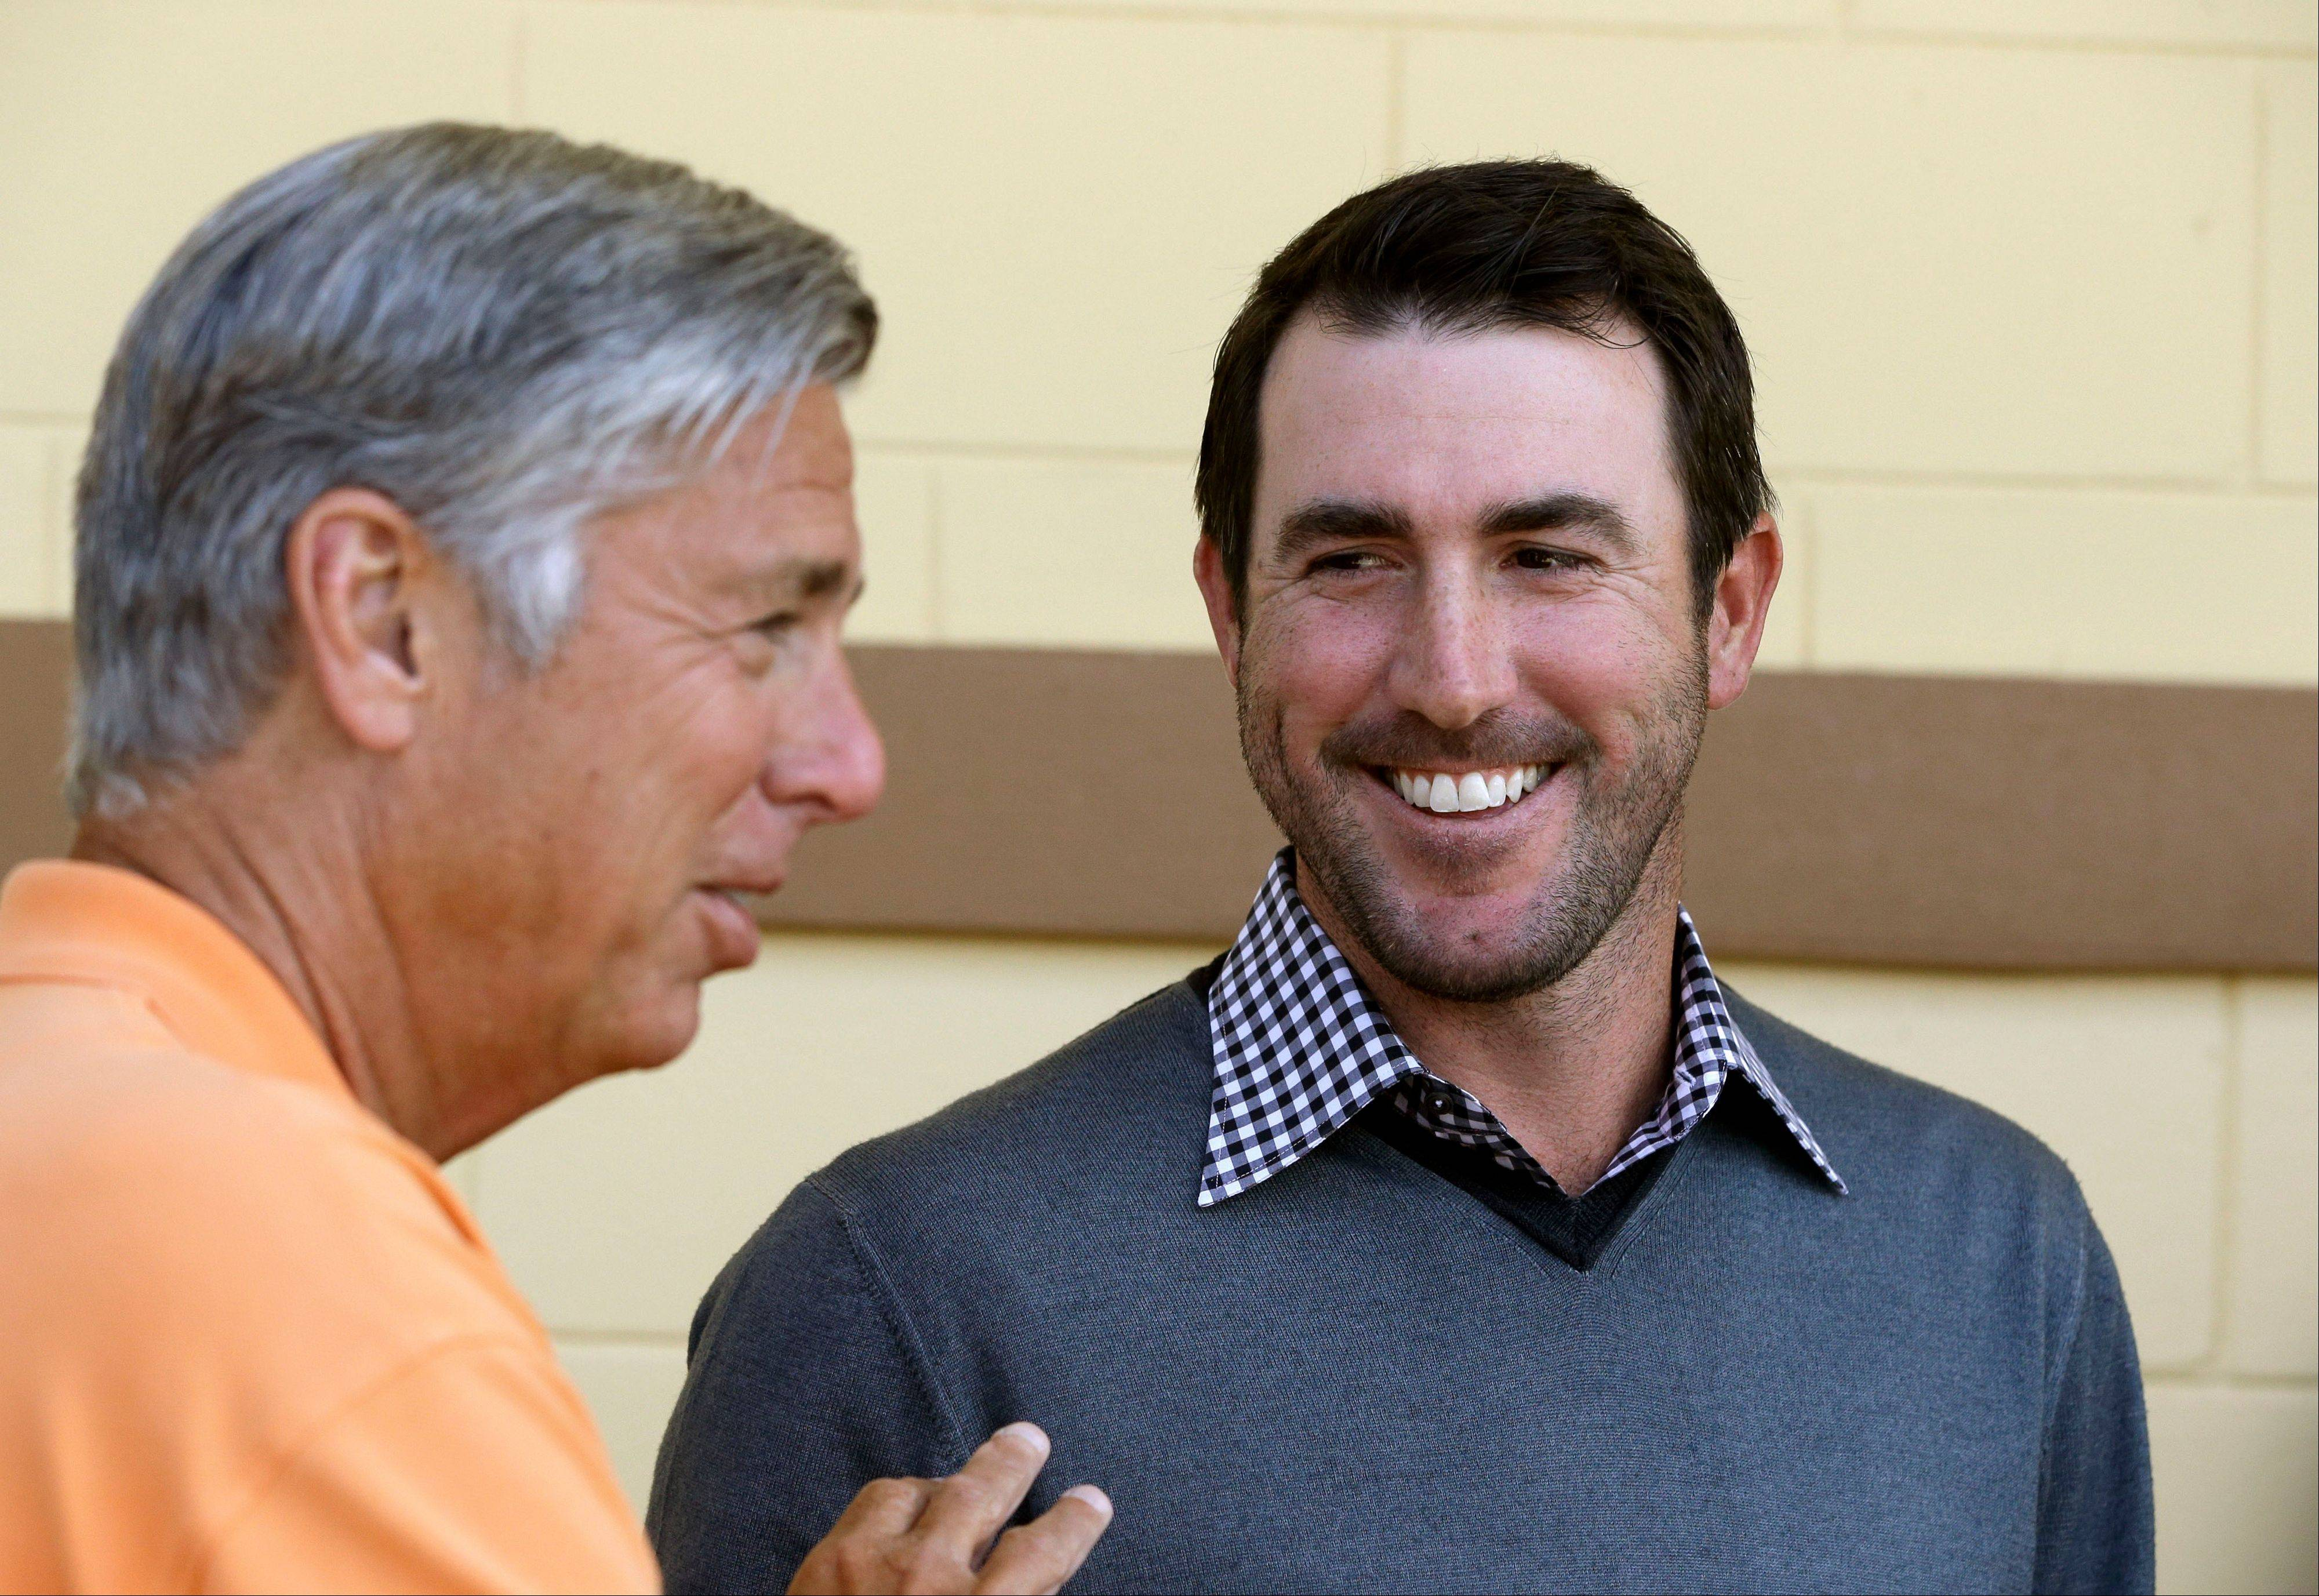 Detroit Tigers pitcher Justin Verlander, right, looks at team president, CEO and general manager Dave Dombrowski during a news conference after a spring baseball exhibition game on Friday, March 29, 2013, in Lakeland, Fla., where Verlander talked about his new seven-year, $180-million contract.